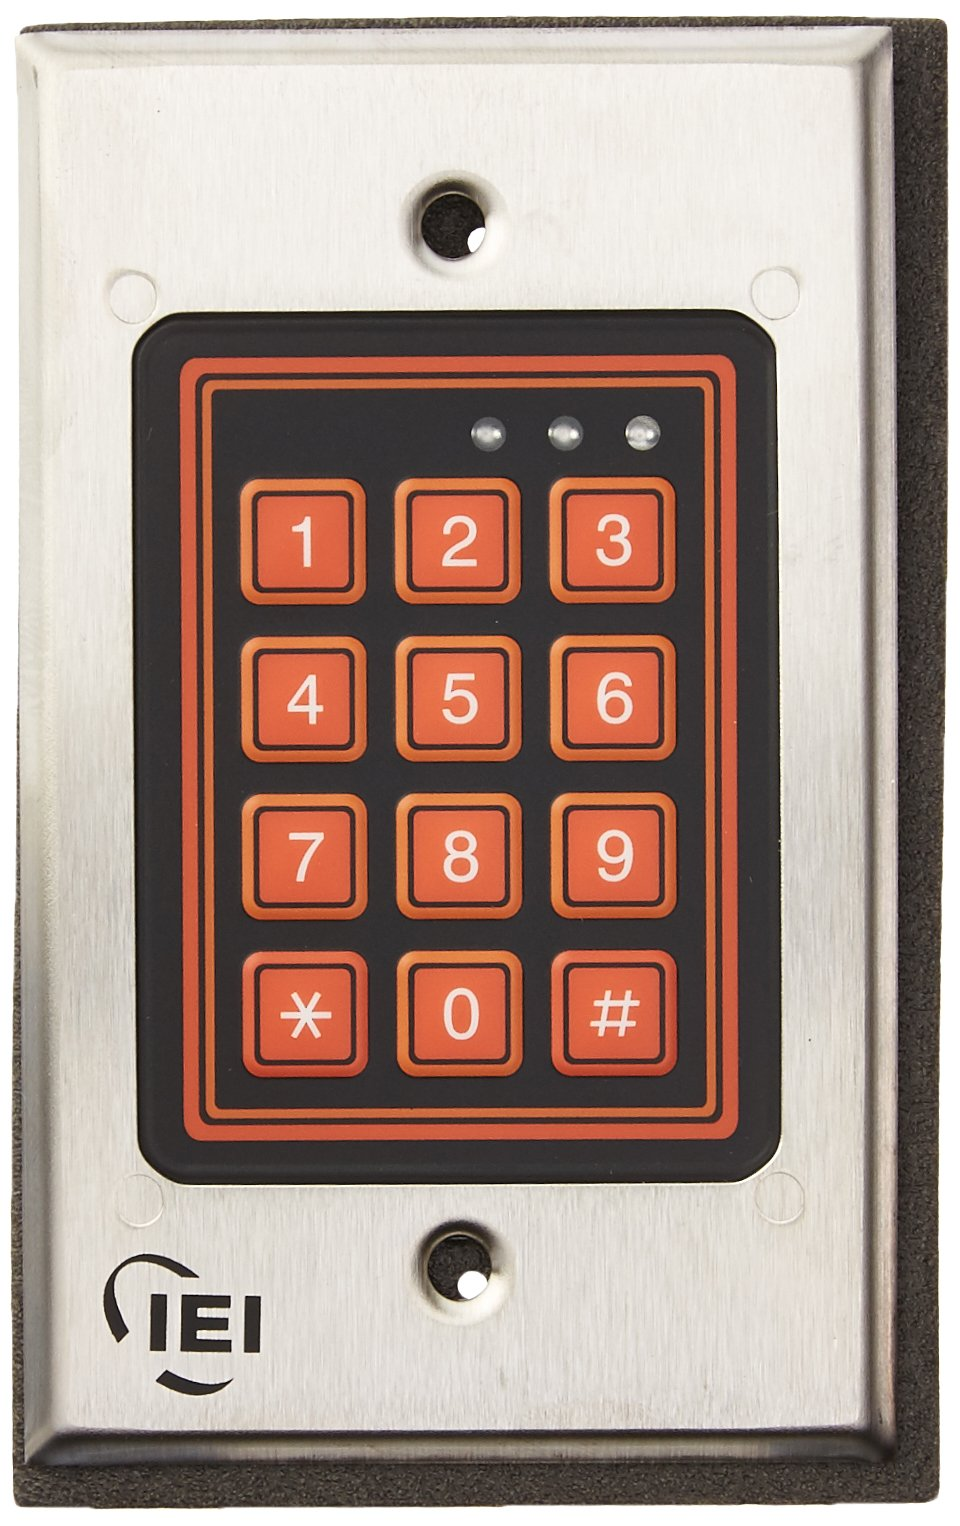 IEI International Electronics 212W Membrane Keypad by IEI